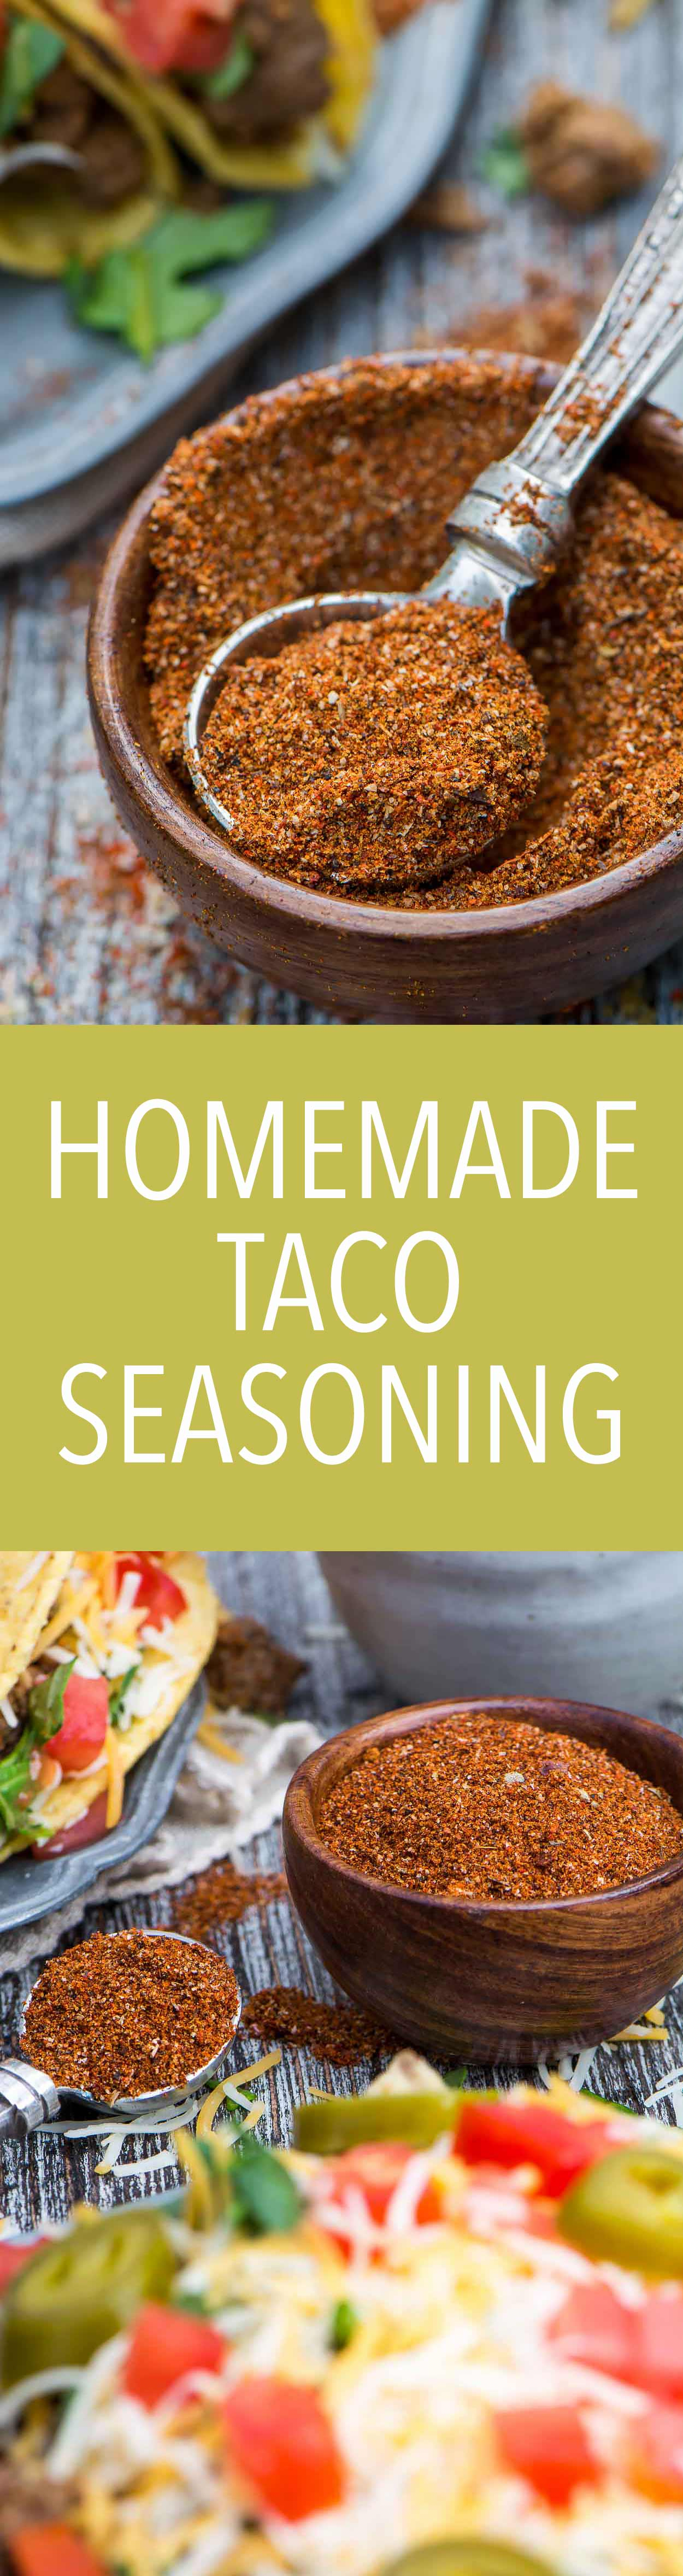 Homemade Taco Seasoning is made from common pantry ingredients and takes only two minutes to make! | Simple Revisions